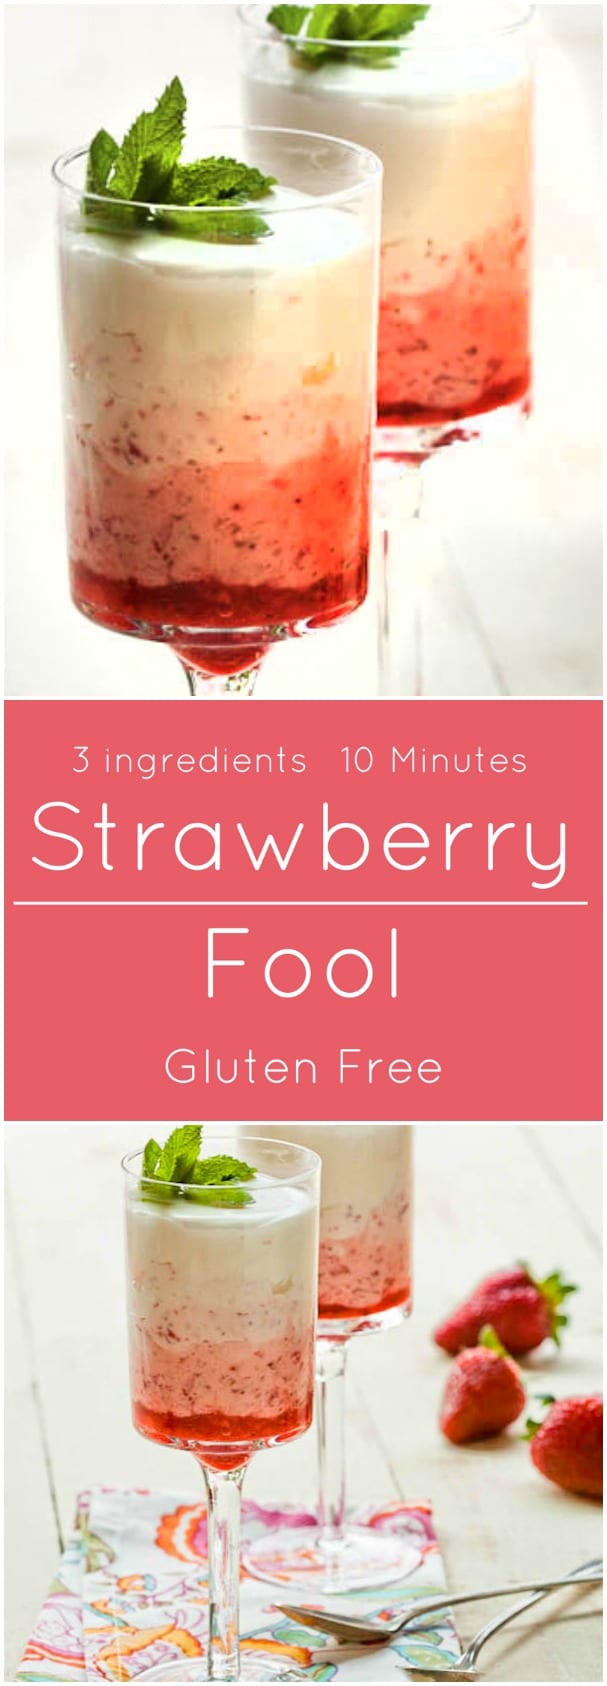 Strawberry Fool takes just 10 minutes to make and is gluten free!